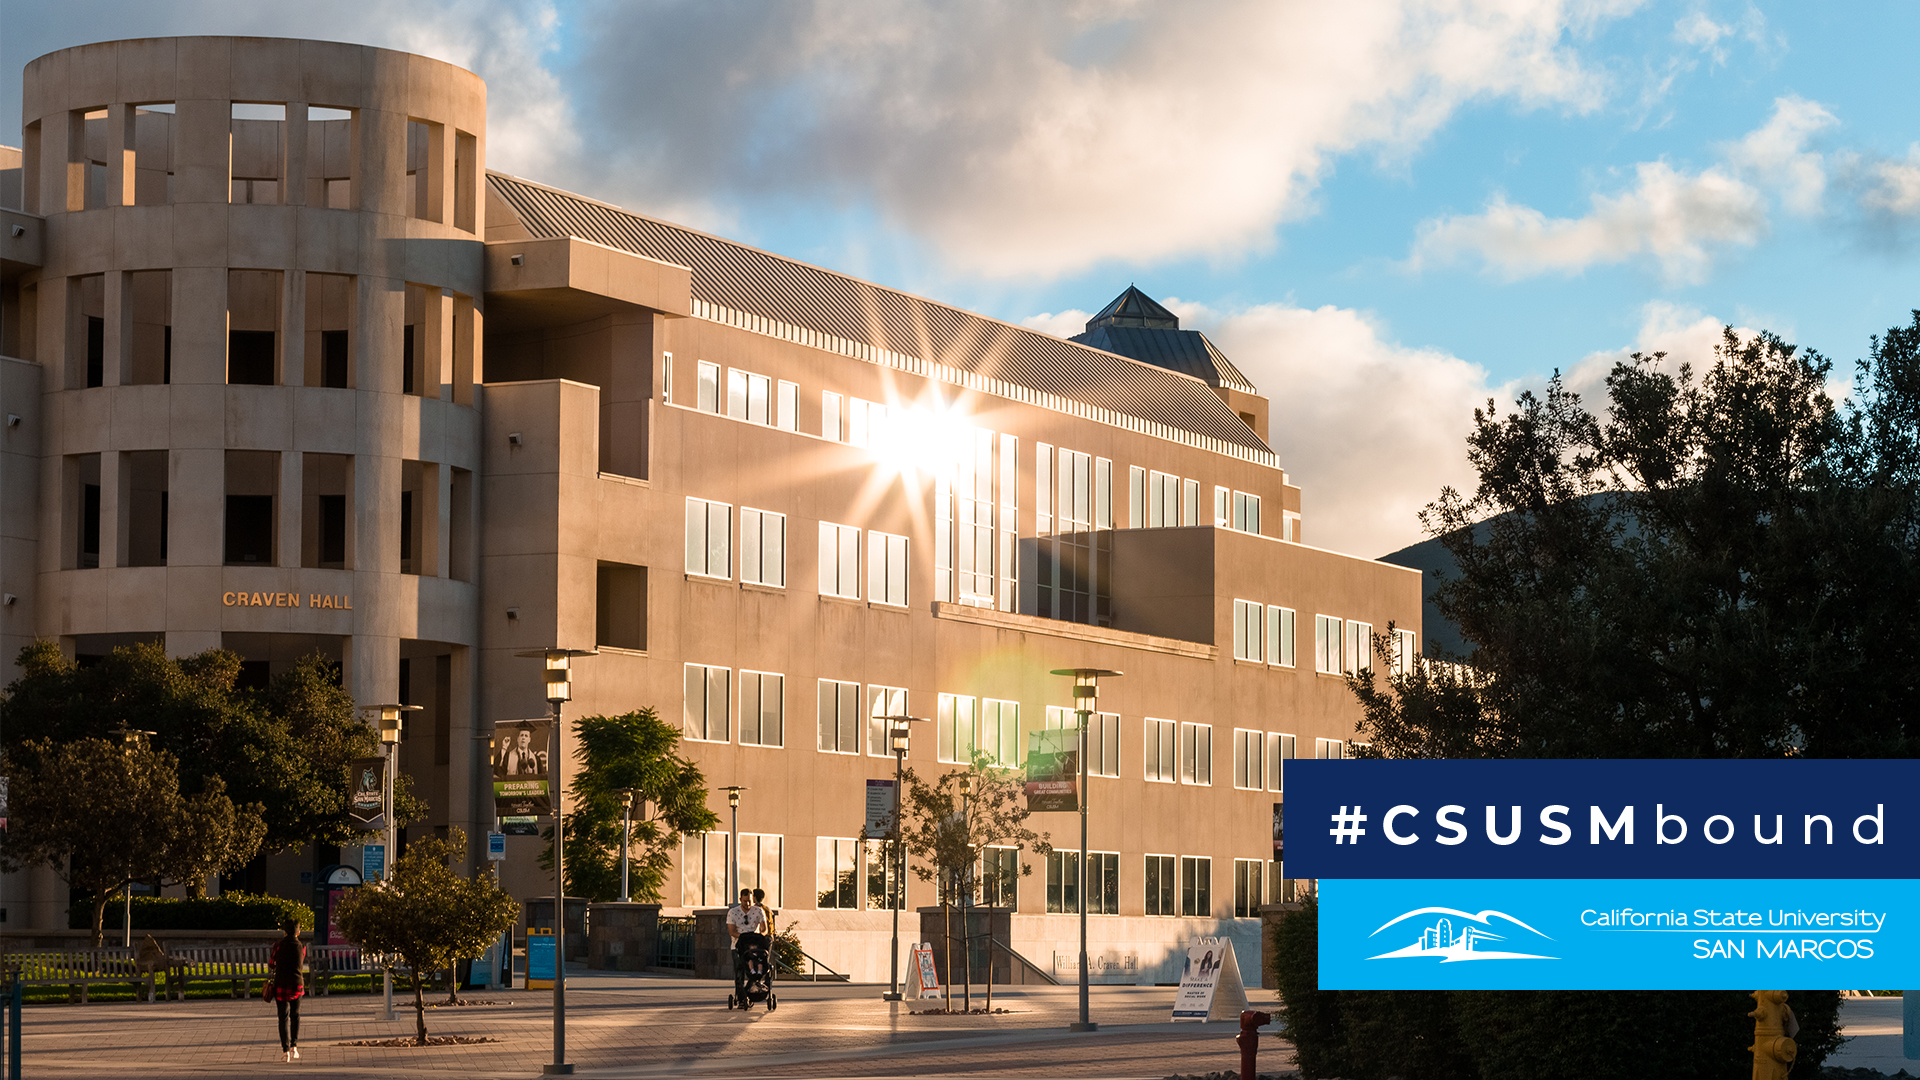 CSUSM Virtual Background